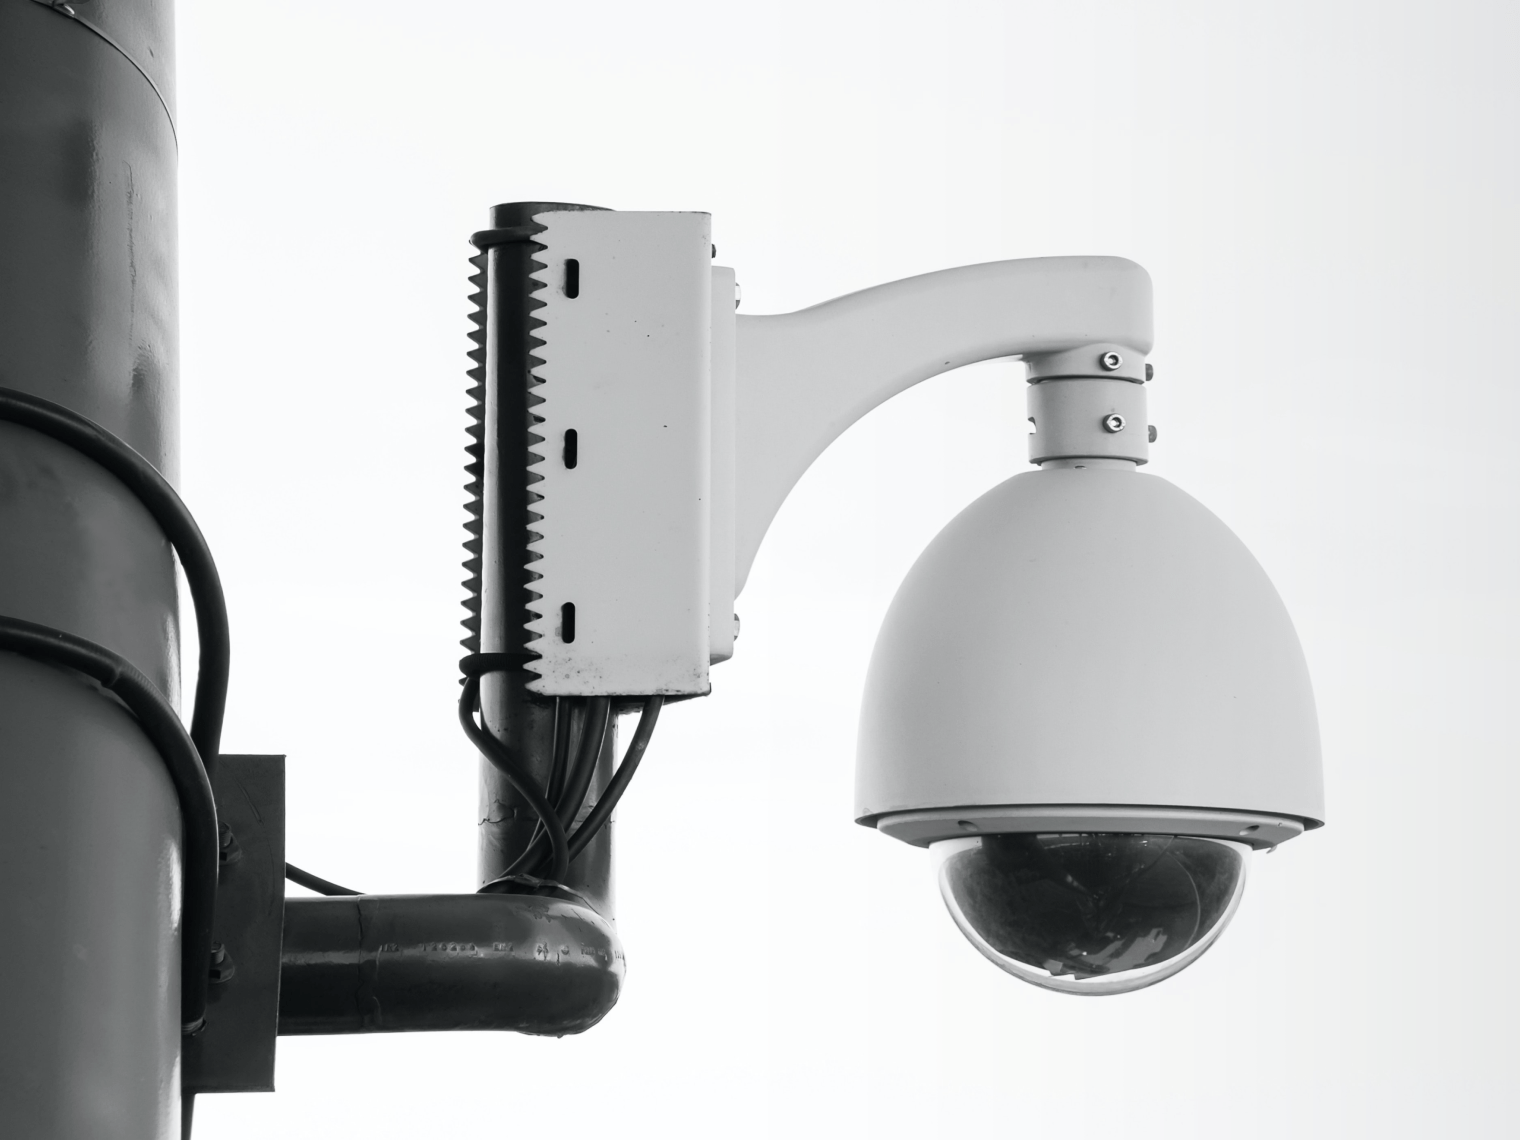 Do it yourself or do it together: self installed home security is here!